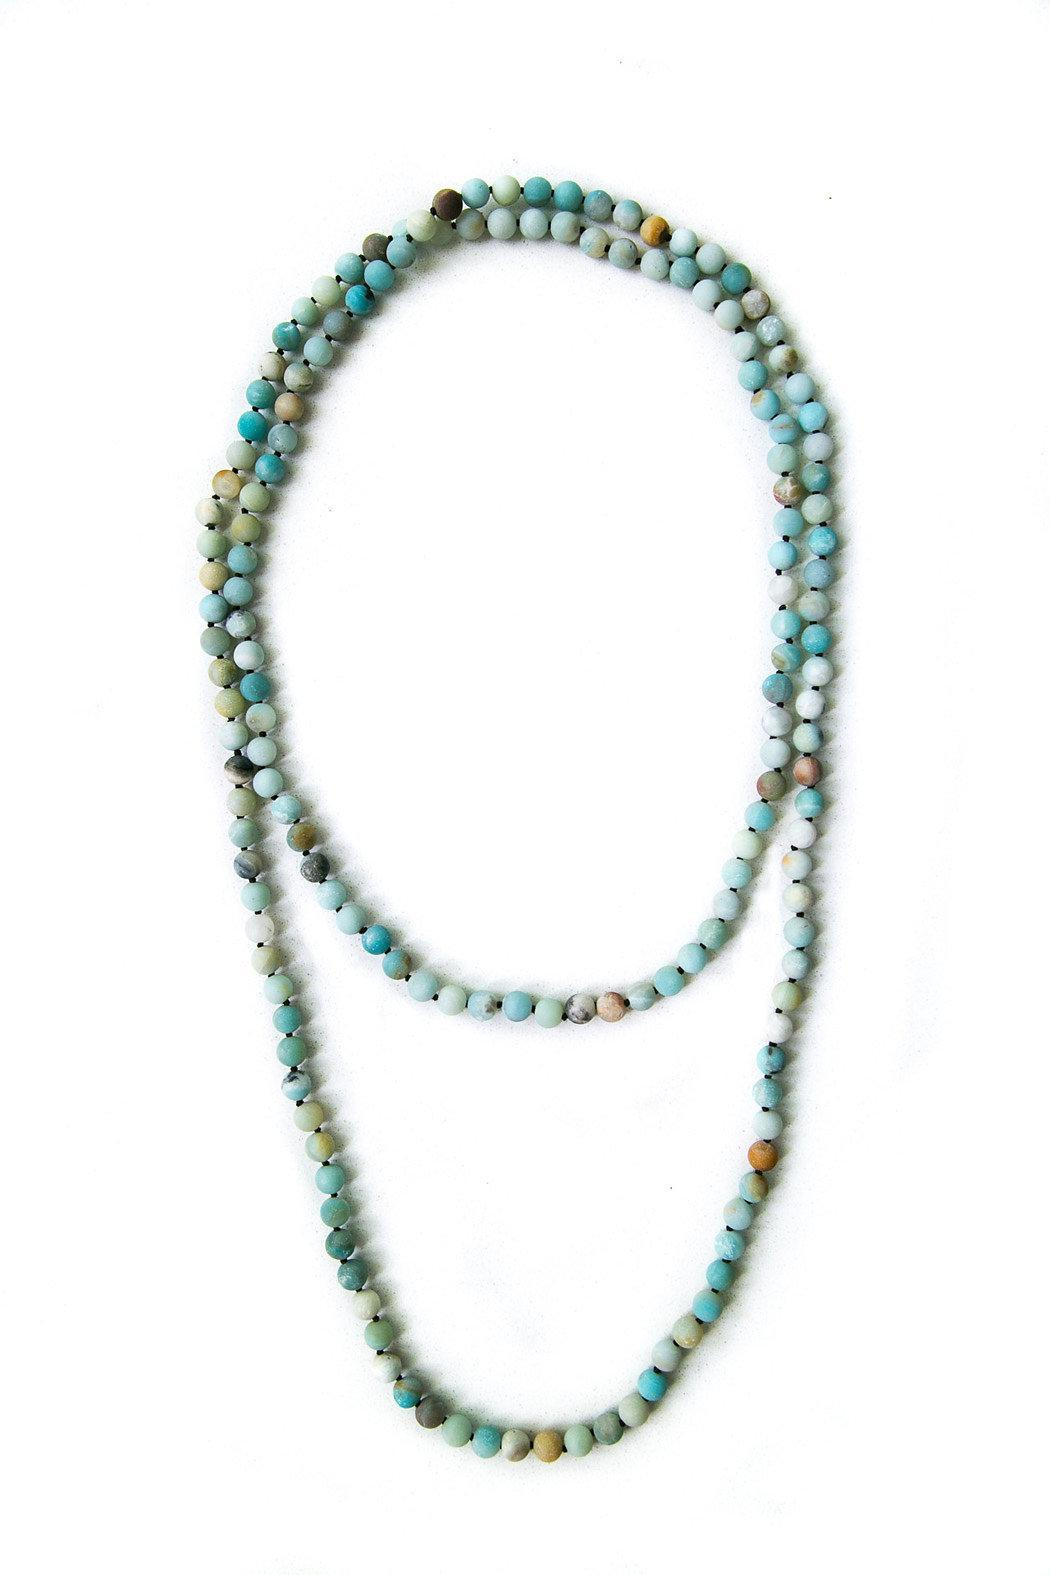 by gosch amazonite necklace from atlanta by